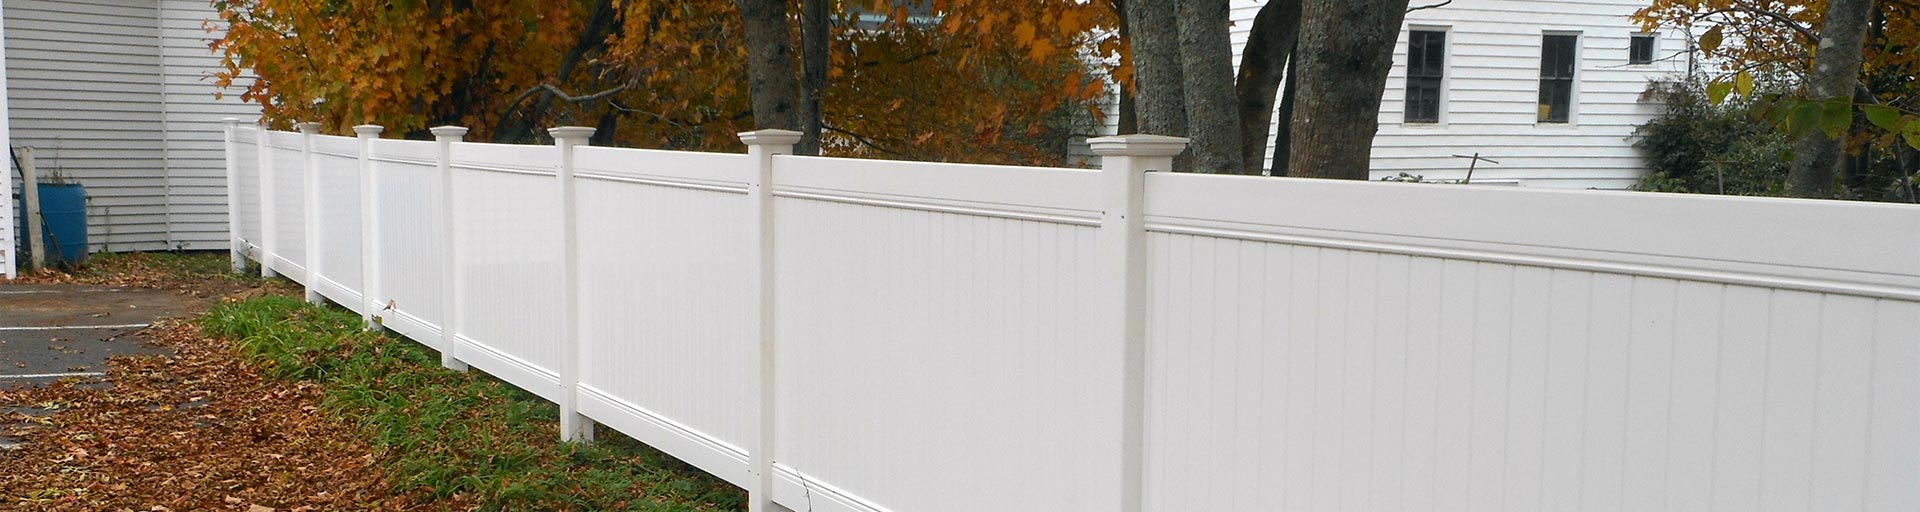 Maine fence company | Picket, baluster, board, rail, solid, semi ...